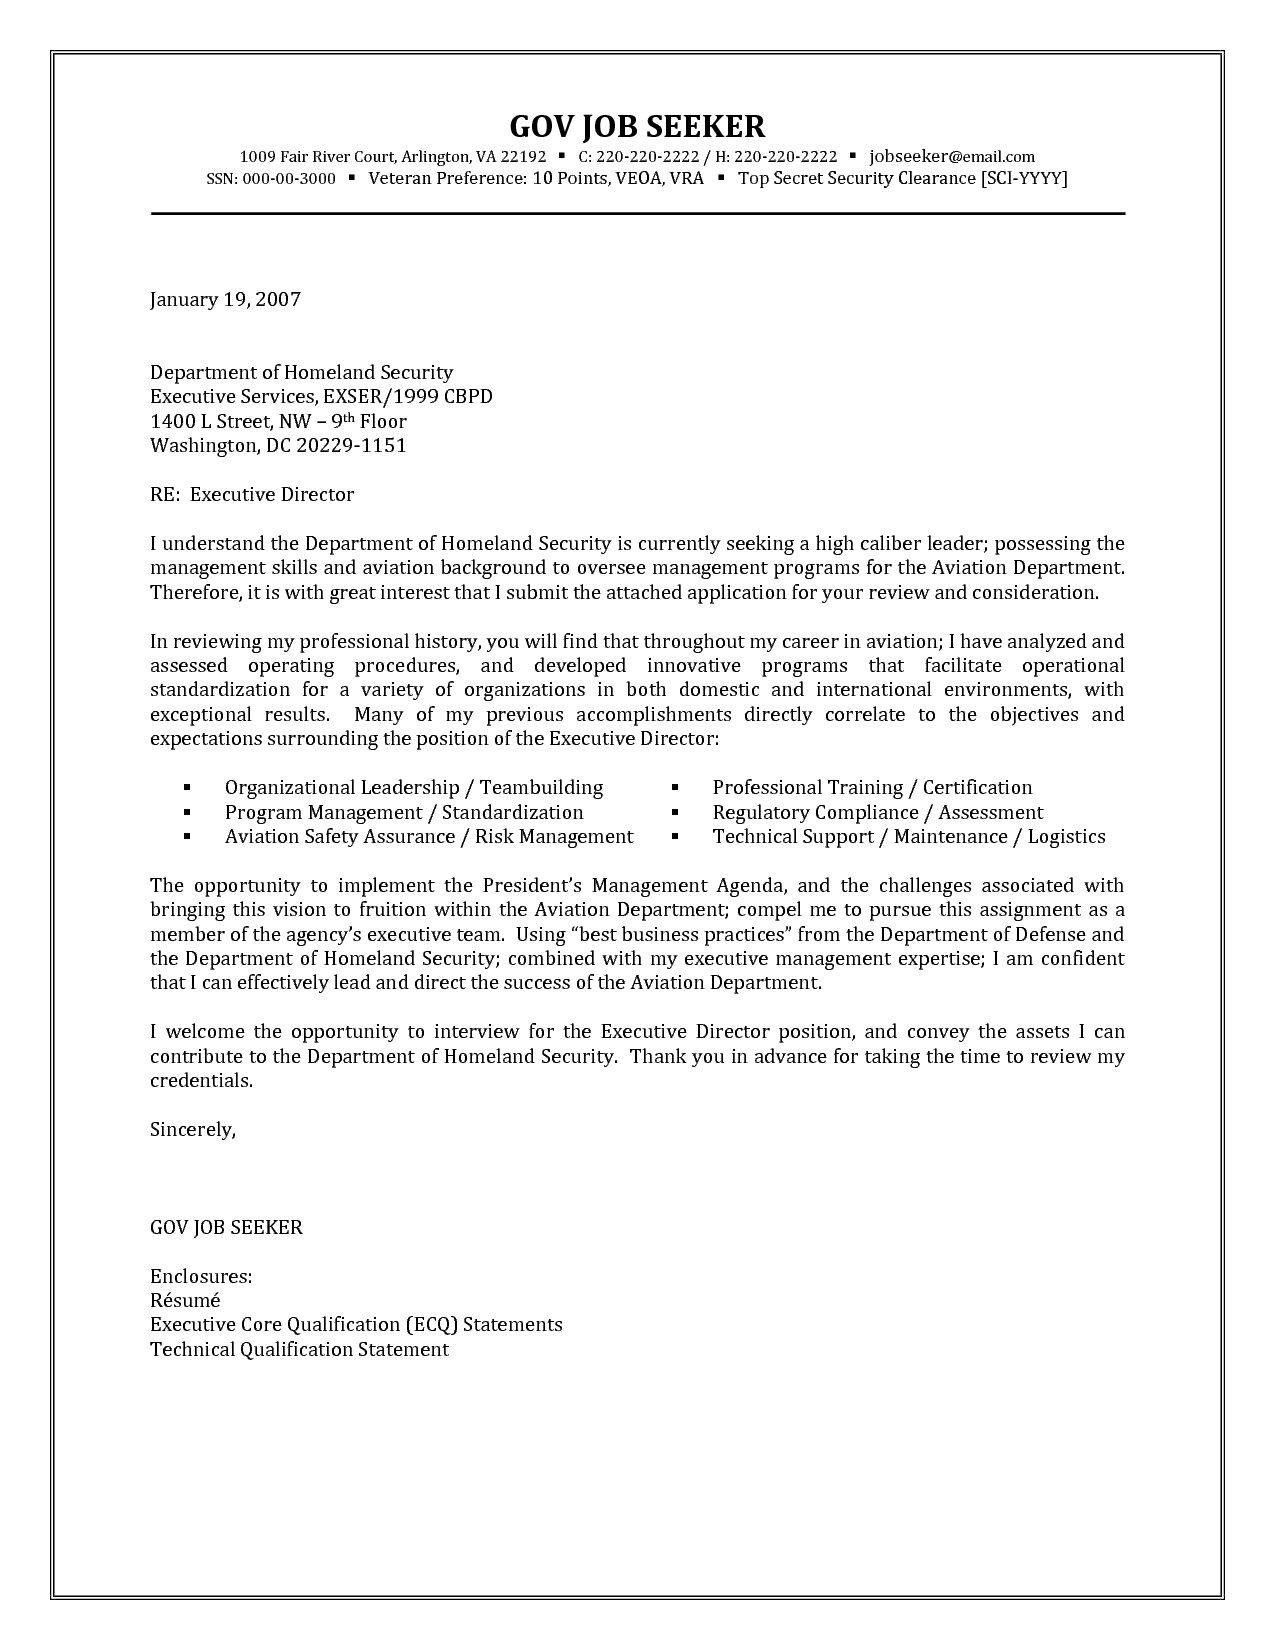 Government Job Cover Letter Template Examples | Letter Cover Templates